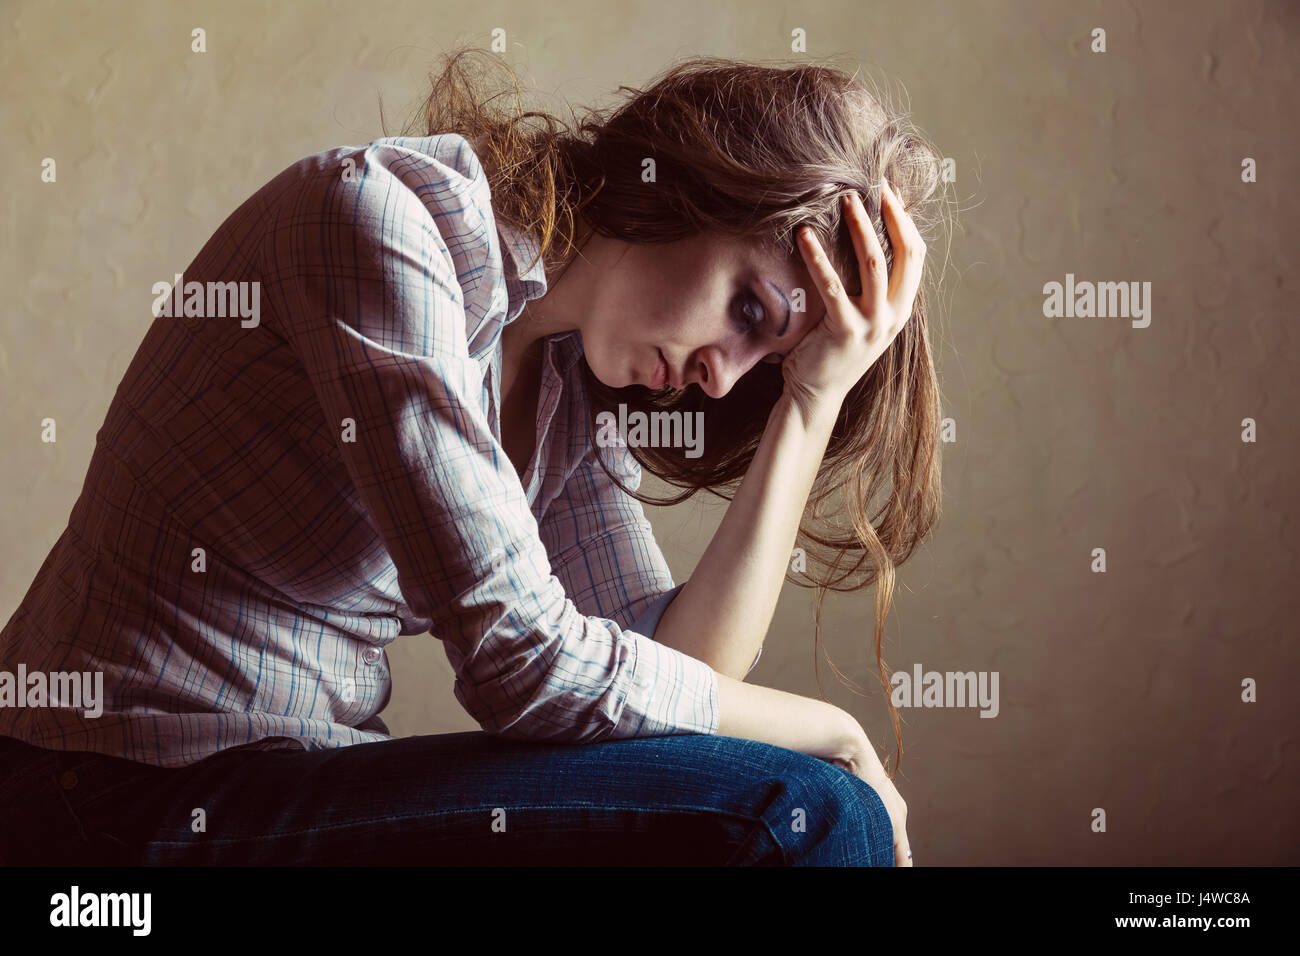 Young sad girl sitting alone in an empty room - Stock Image